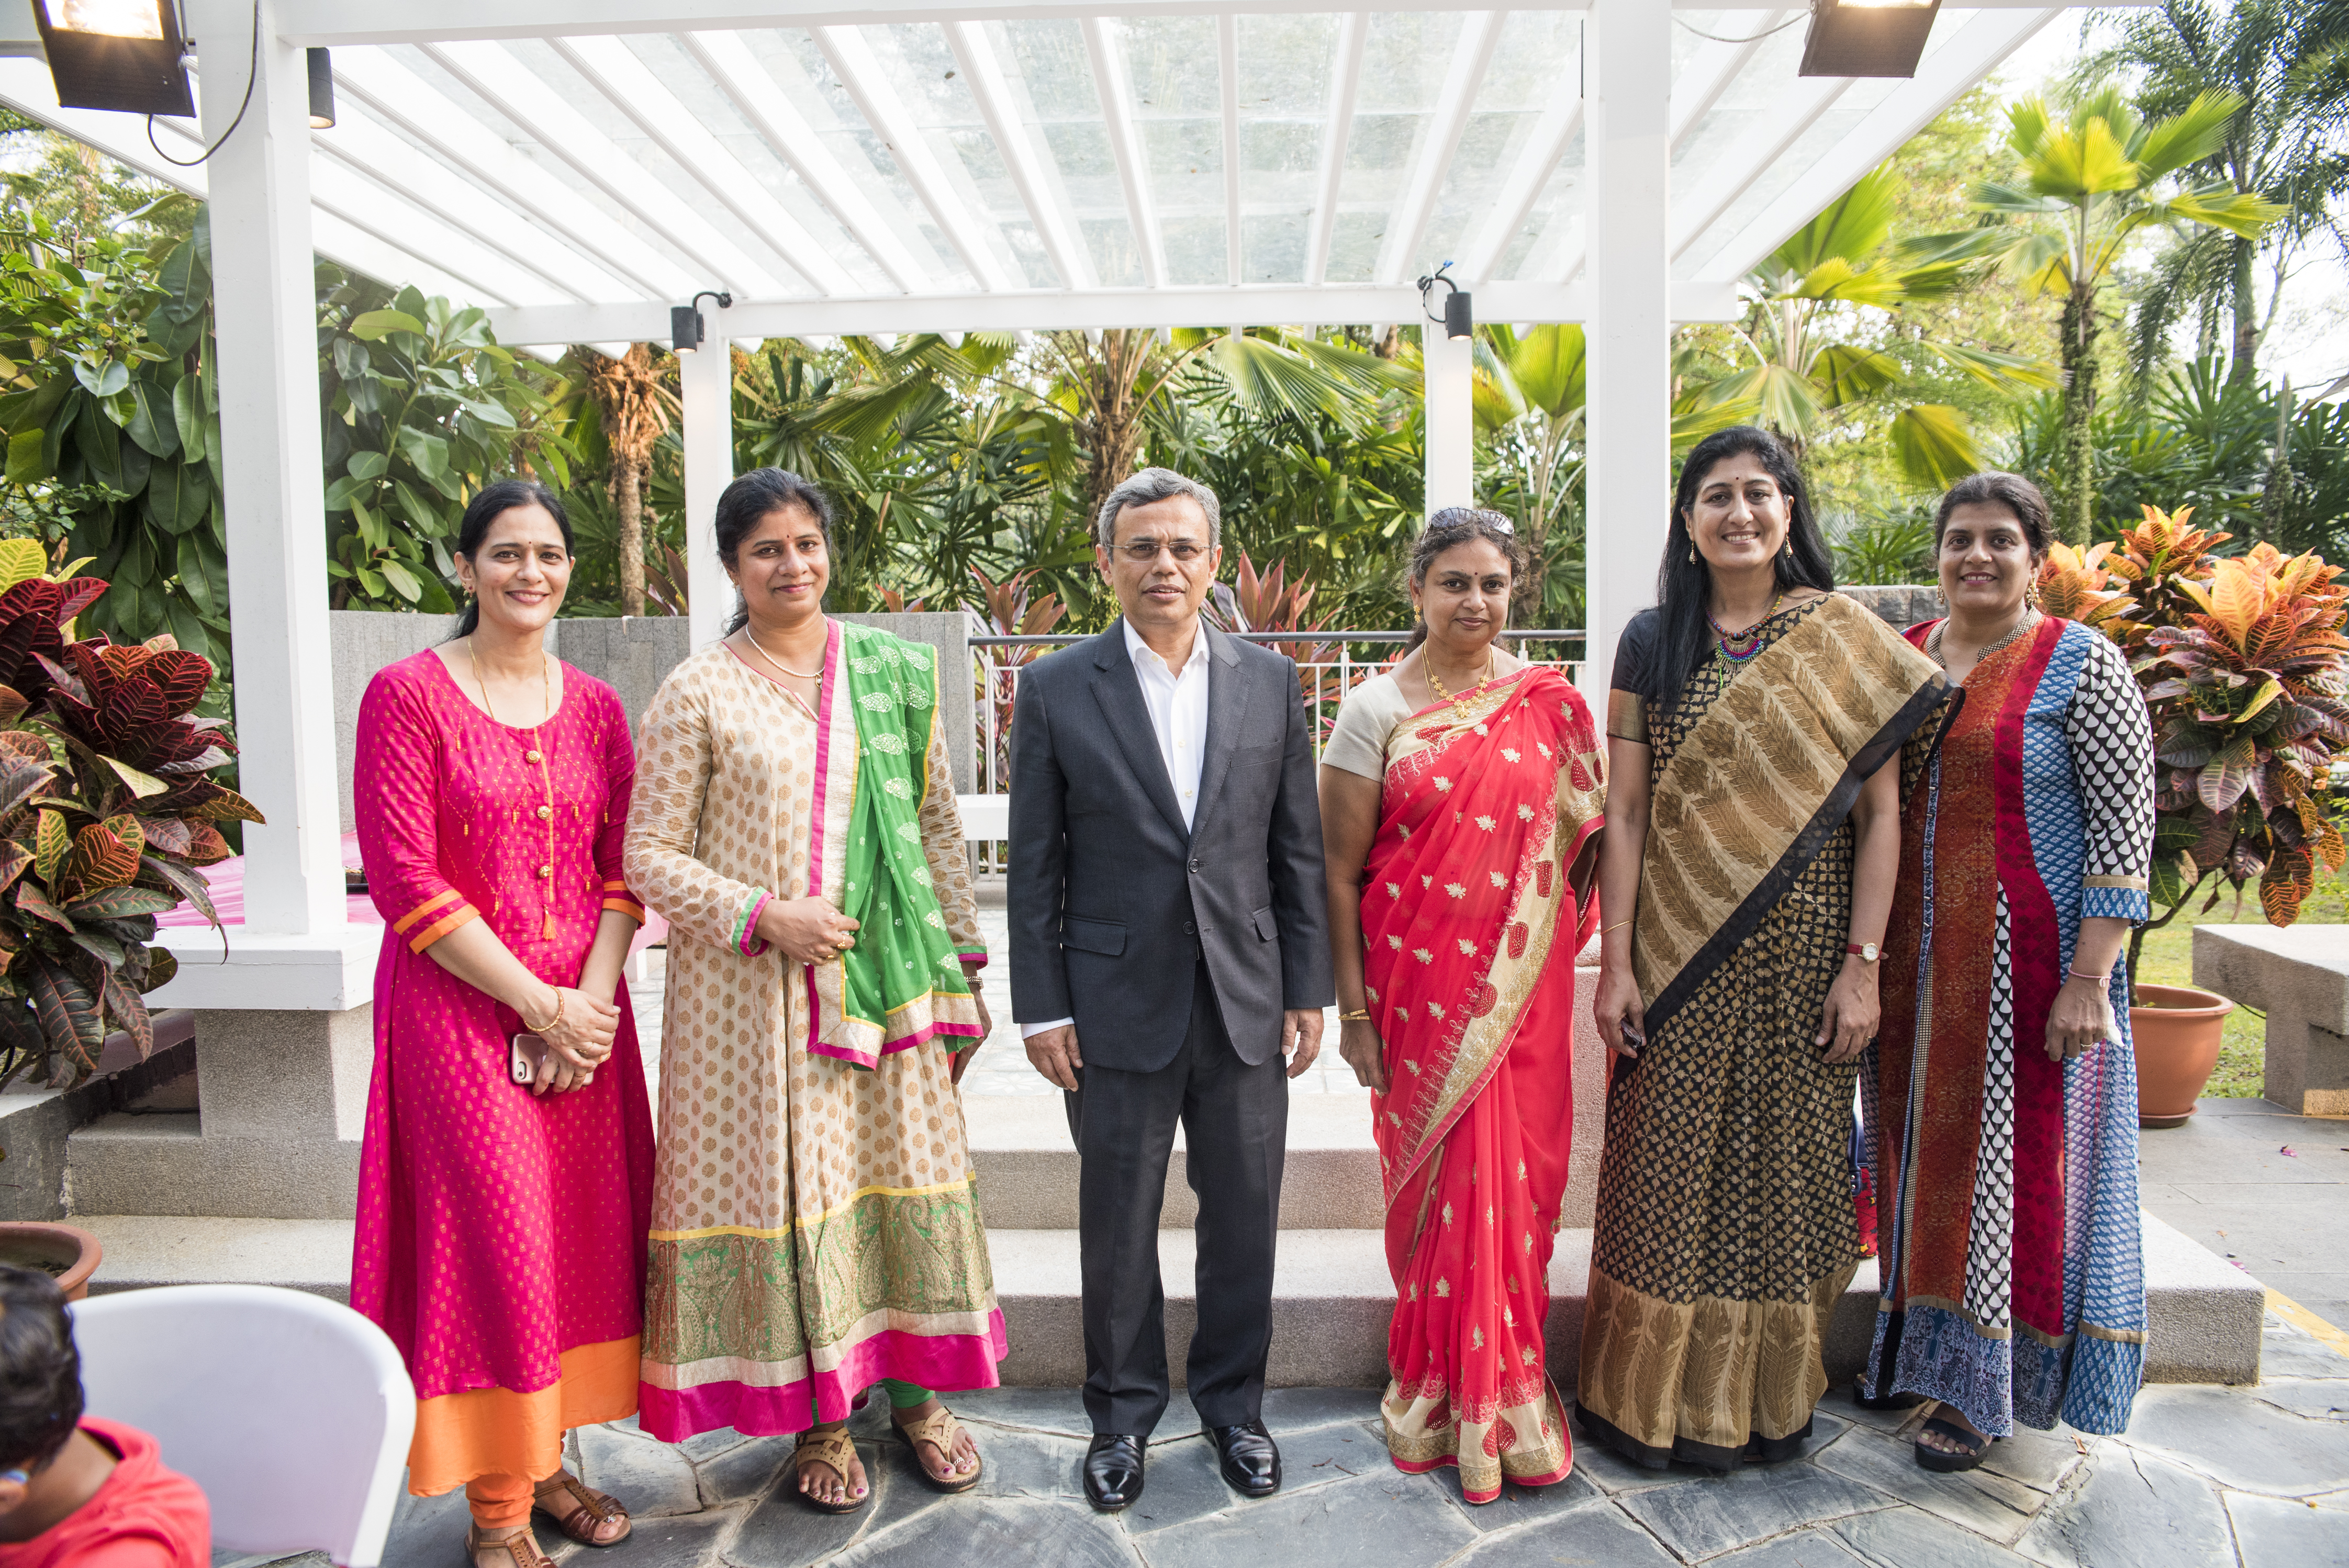 H.E. Jawed Ashraf, High Commissioner of India to Singapore along with the team of Stroke Arts Studio who taught the intricacies of rangoli designs to the people at India House.  Photo courtesy: IDF, Singapore